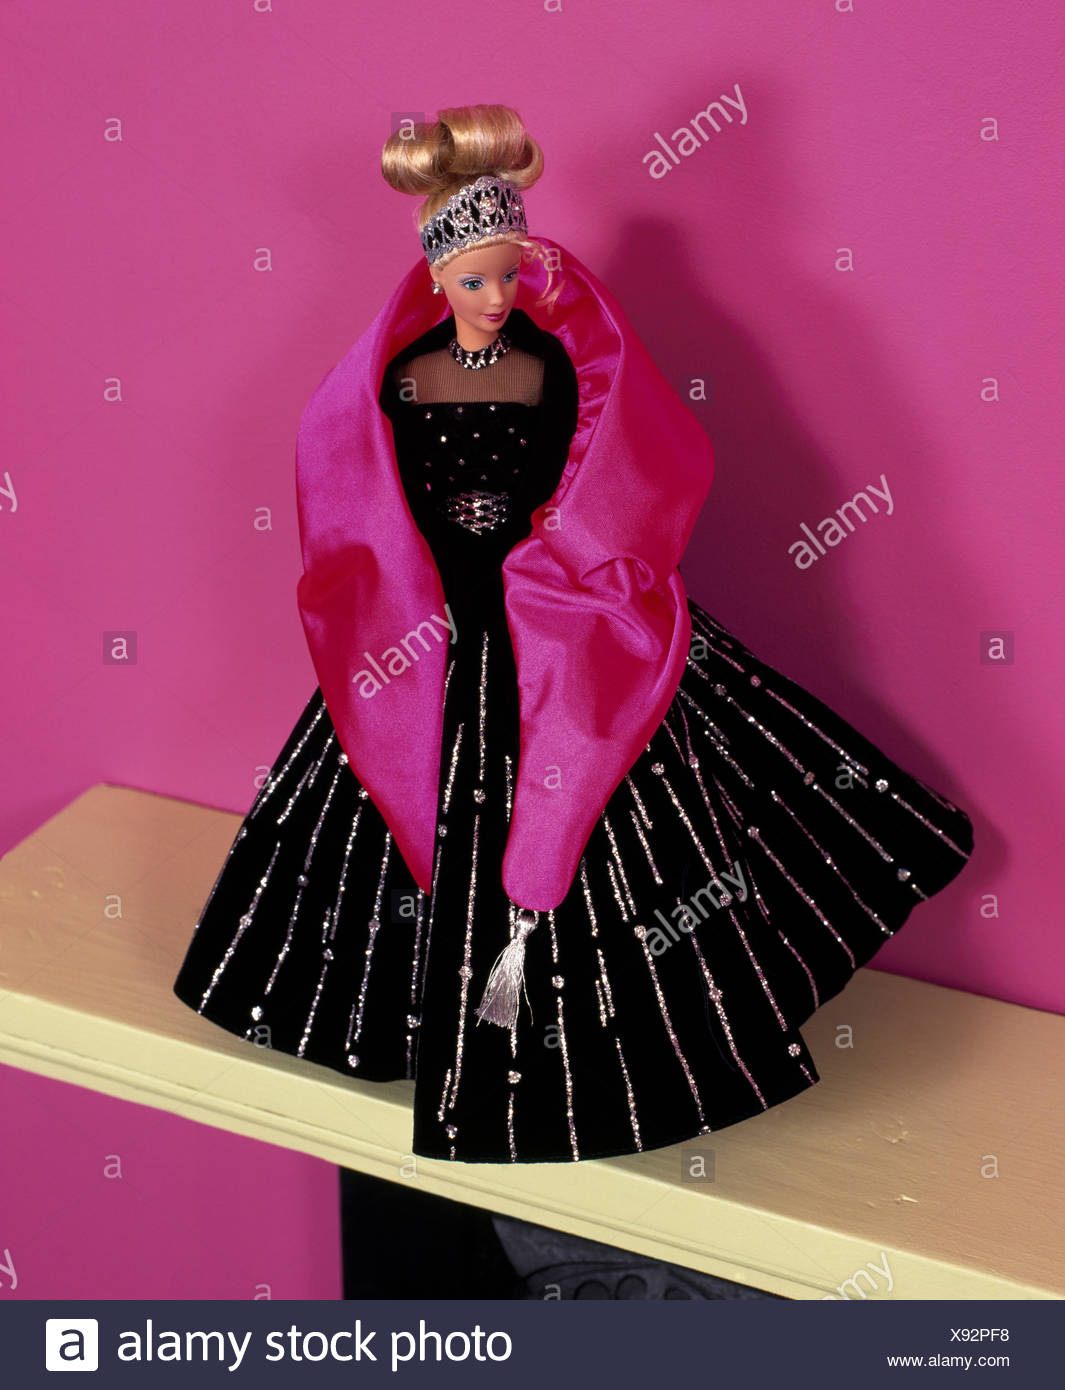 Close-up of a Barbie style doll dressed in hand made evening gown ...